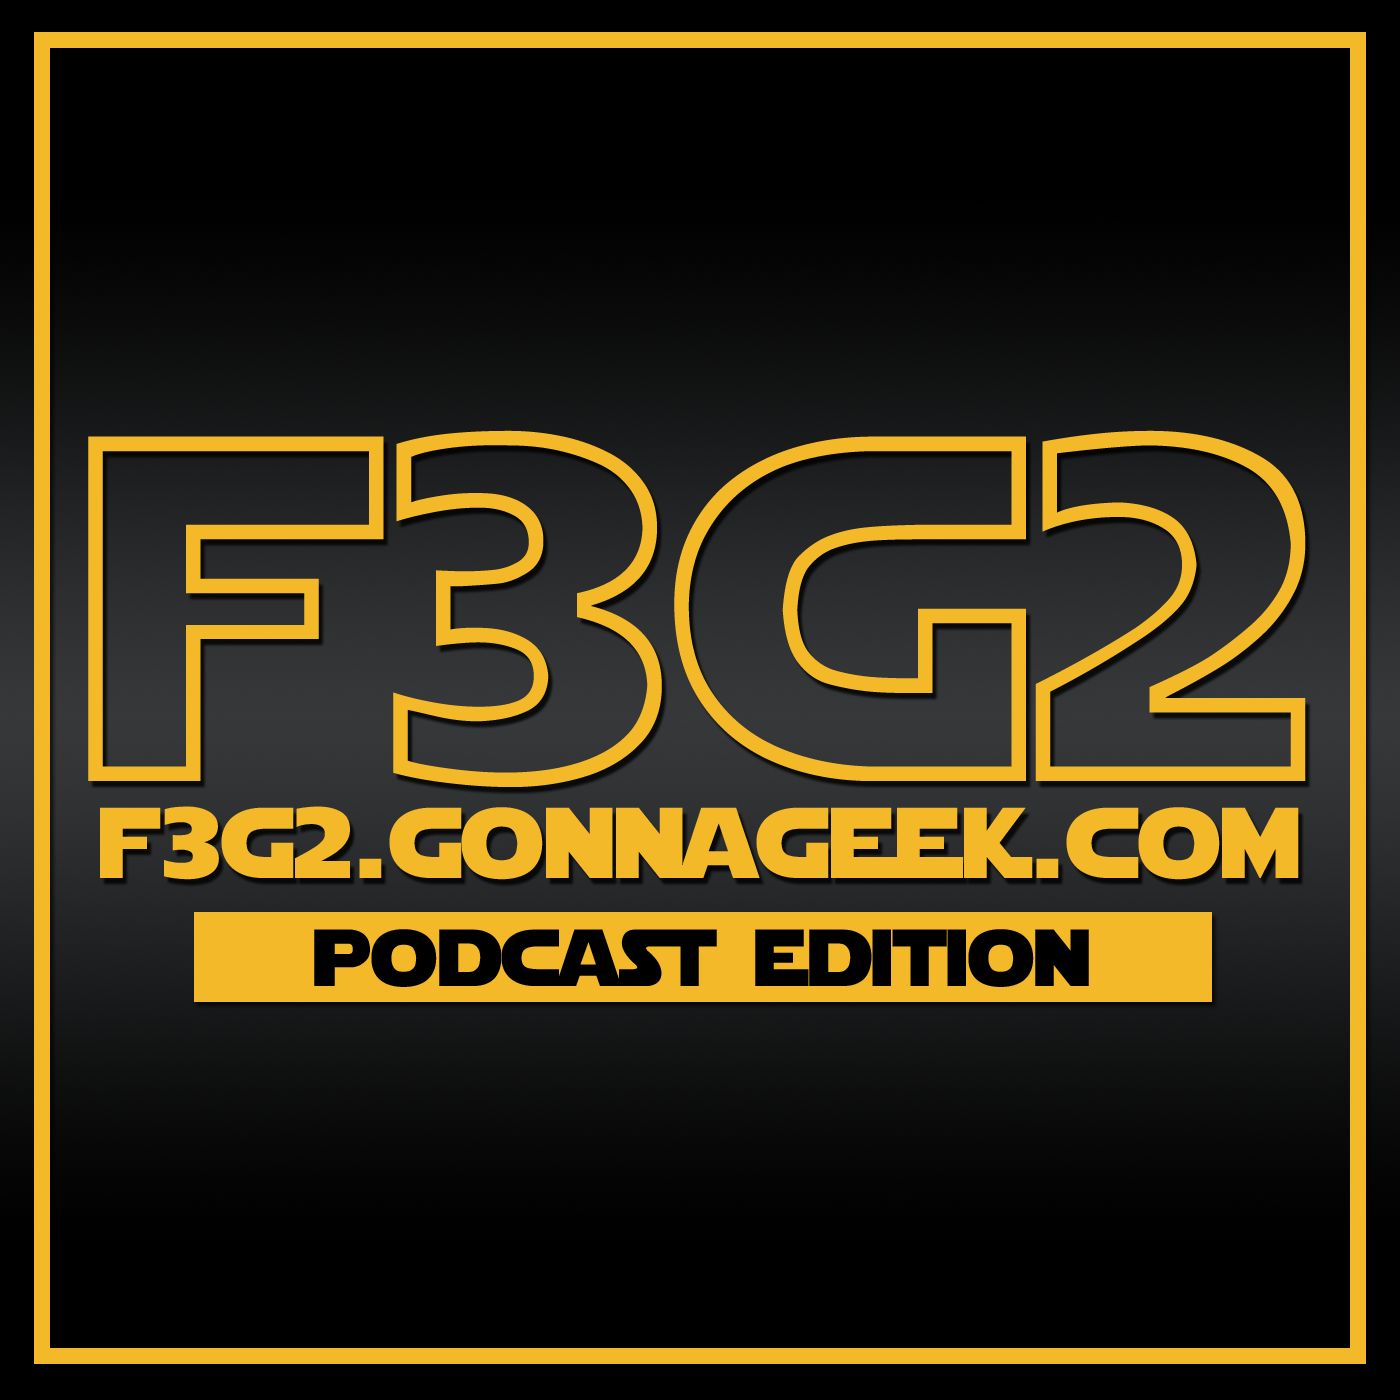 F3G2 - Comic Book Reviews - Companion Podcast